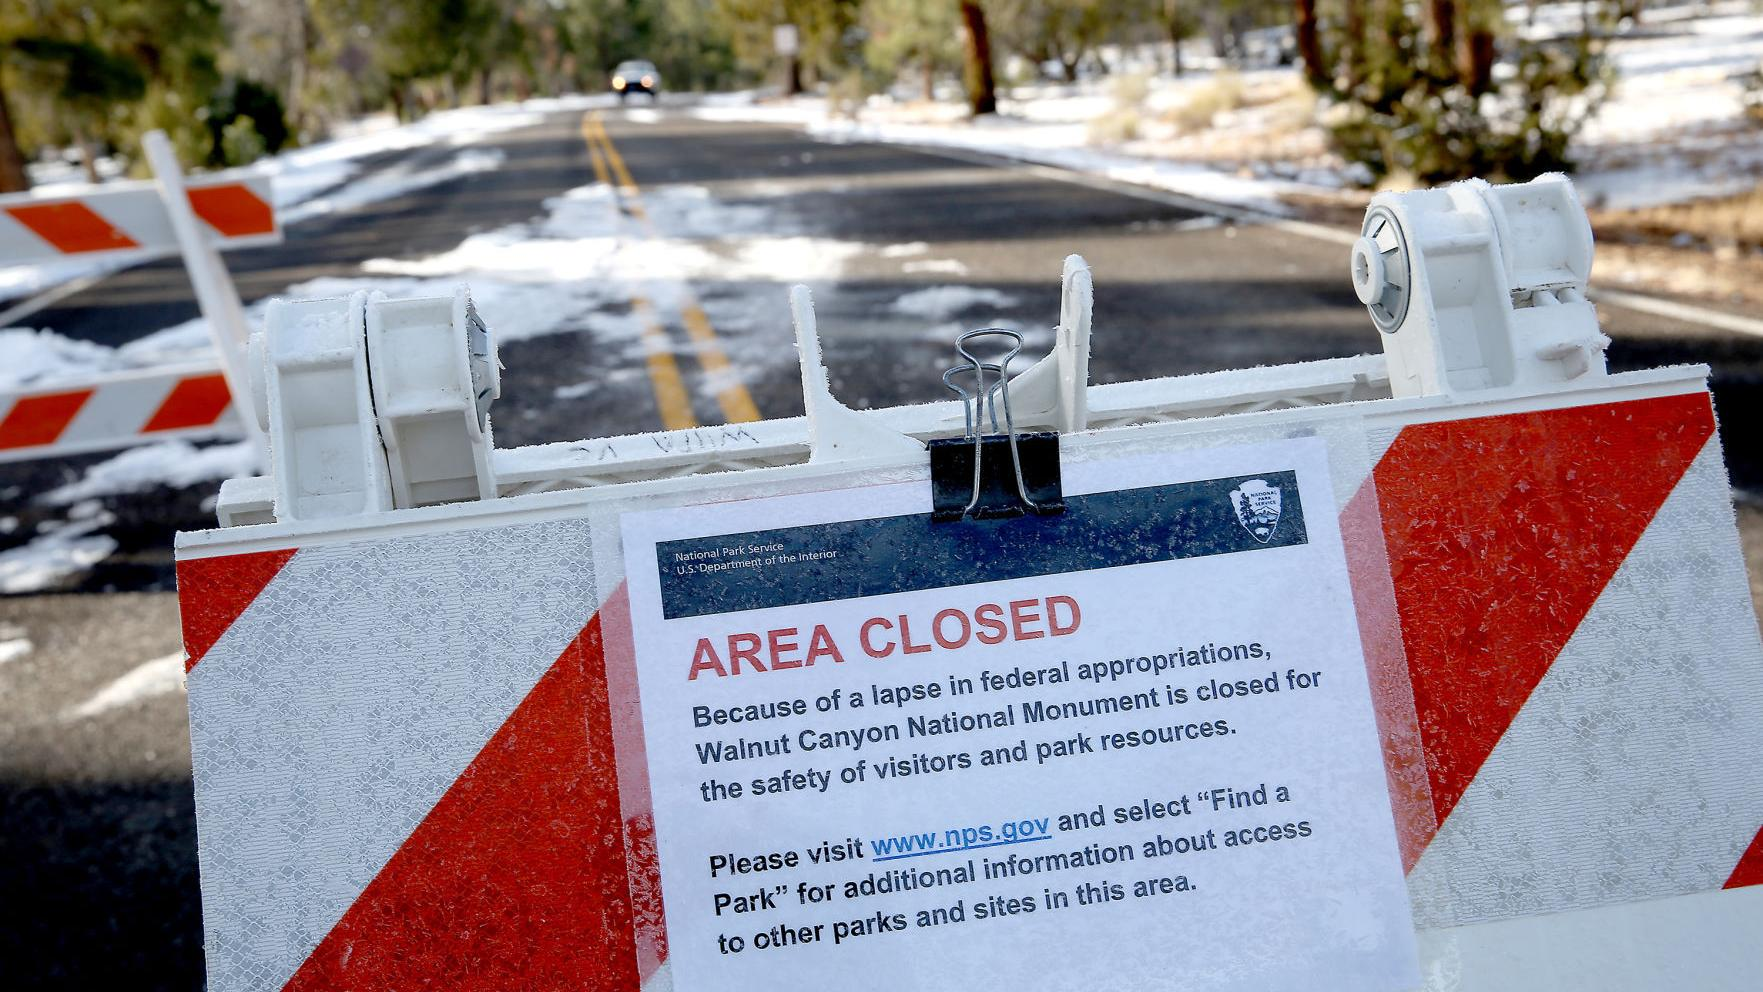 Entrance gates to South Rim open during shutdown; Flagstaff monuments closed